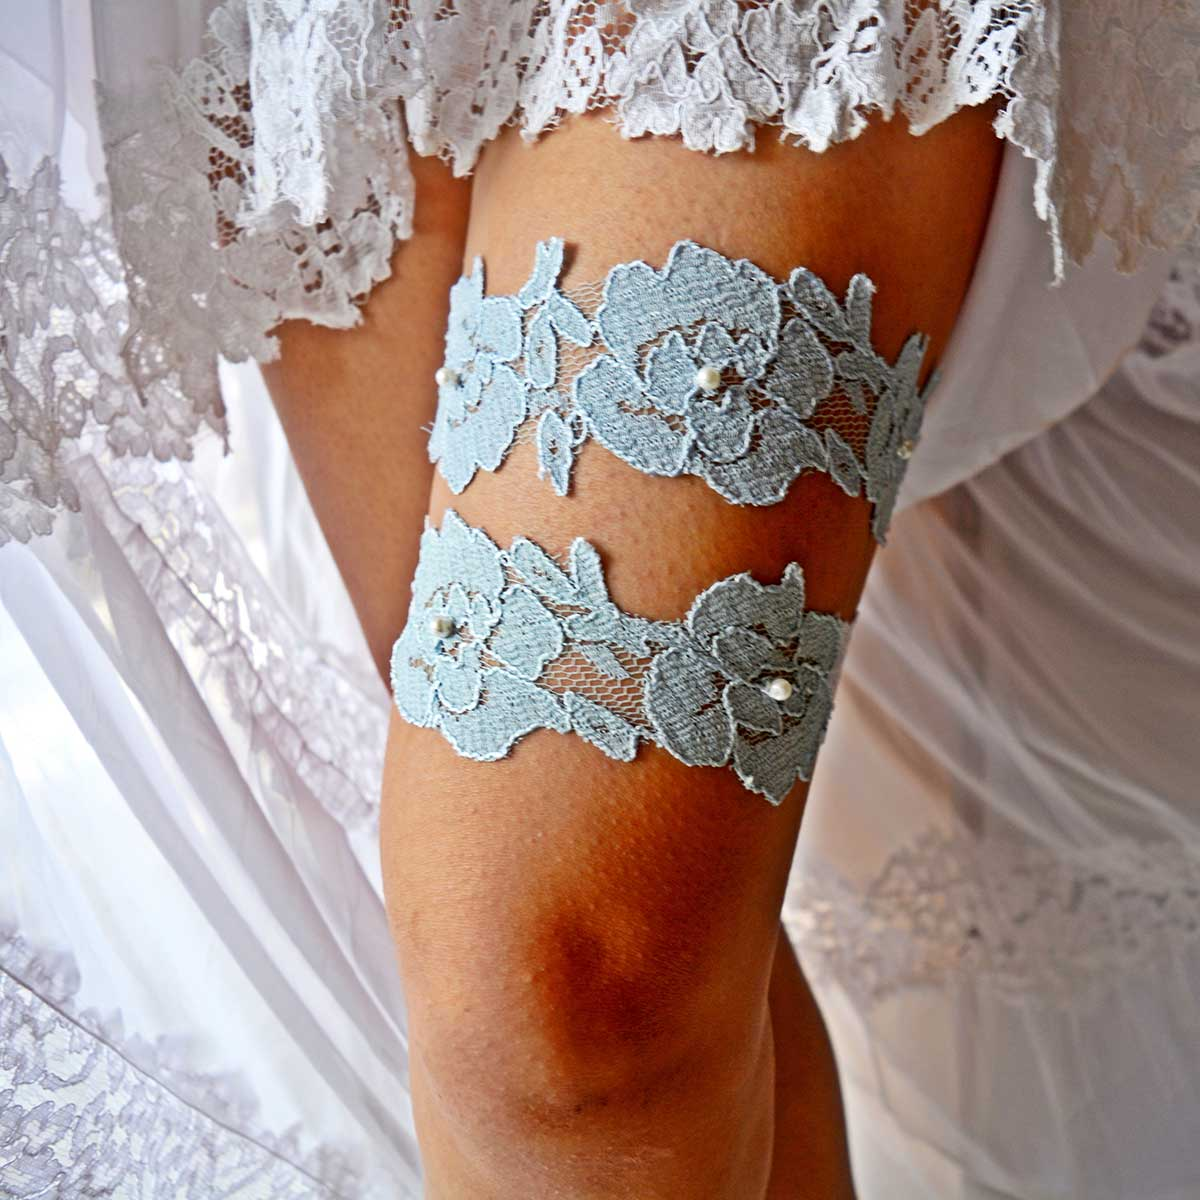 White Bridal Garter With Pearls And Pale Blue Applique Lace - Wedding Garter - SuzannaM Designs